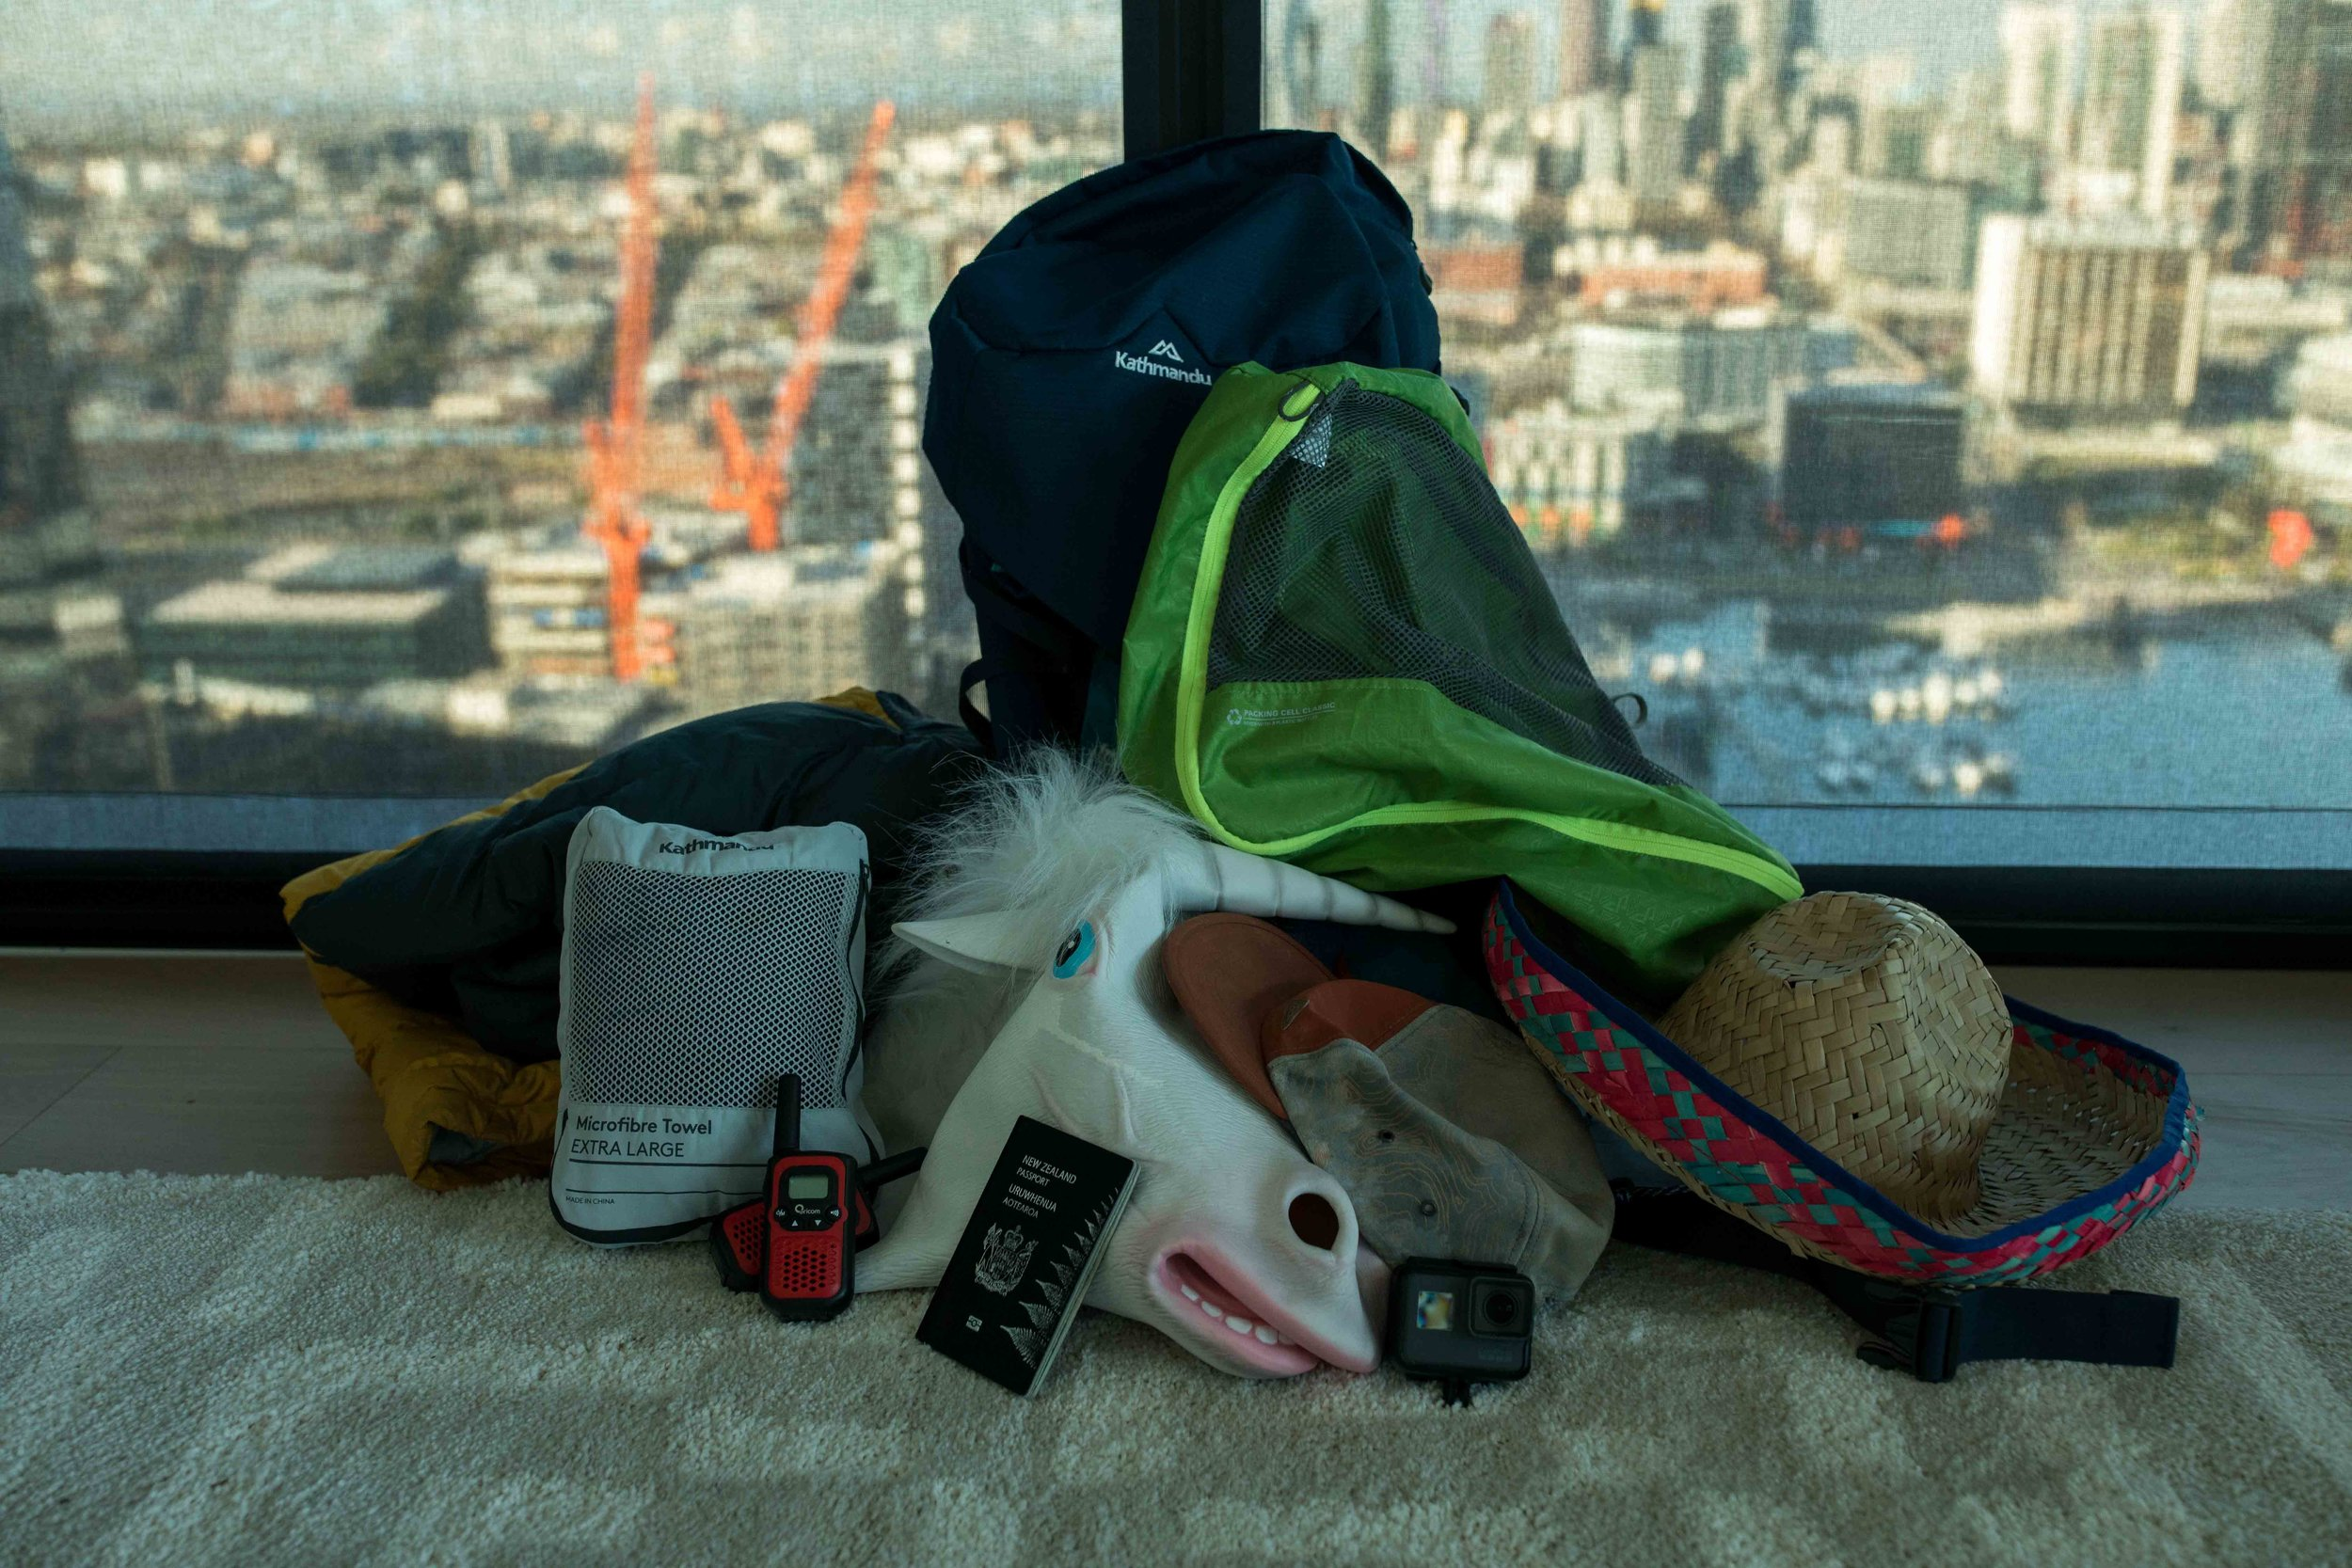 Packing can be stressful so knowing what to take & what the essentials are is key.